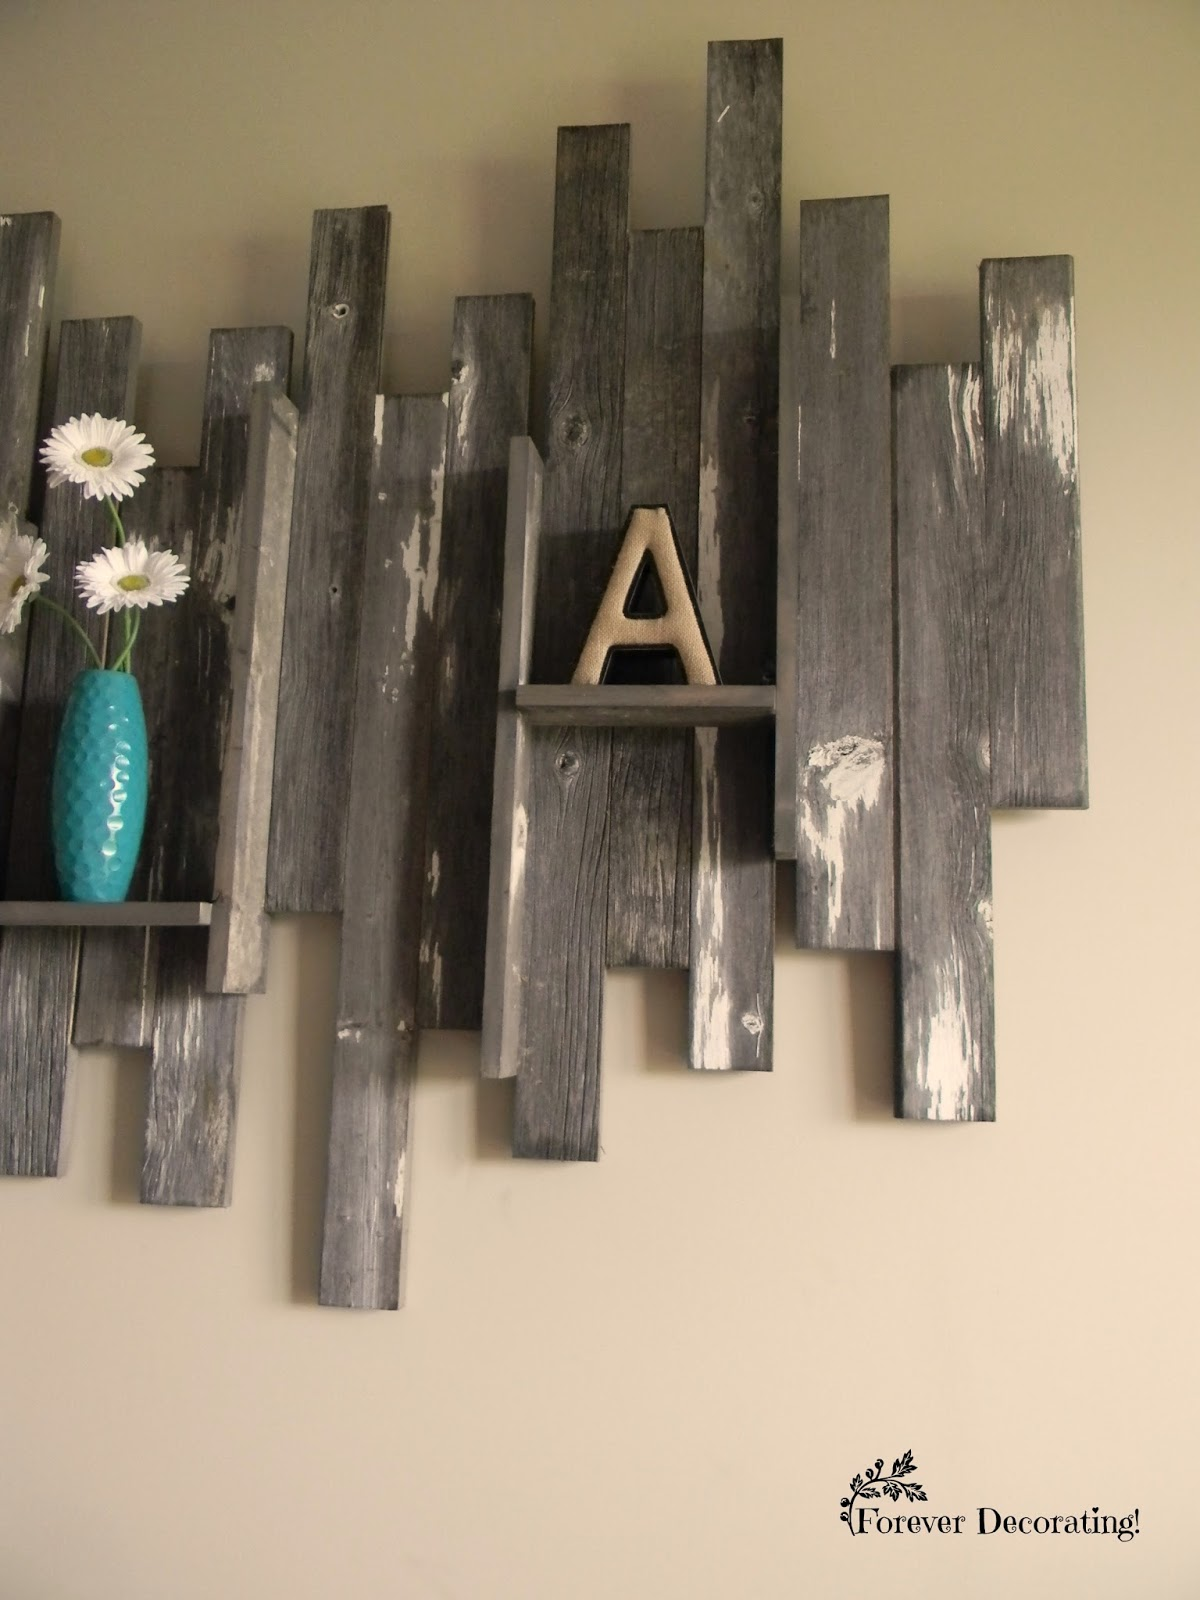 Forever decorating barn wood wall art basement barn wood wall art basement amipublicfo Choice Image